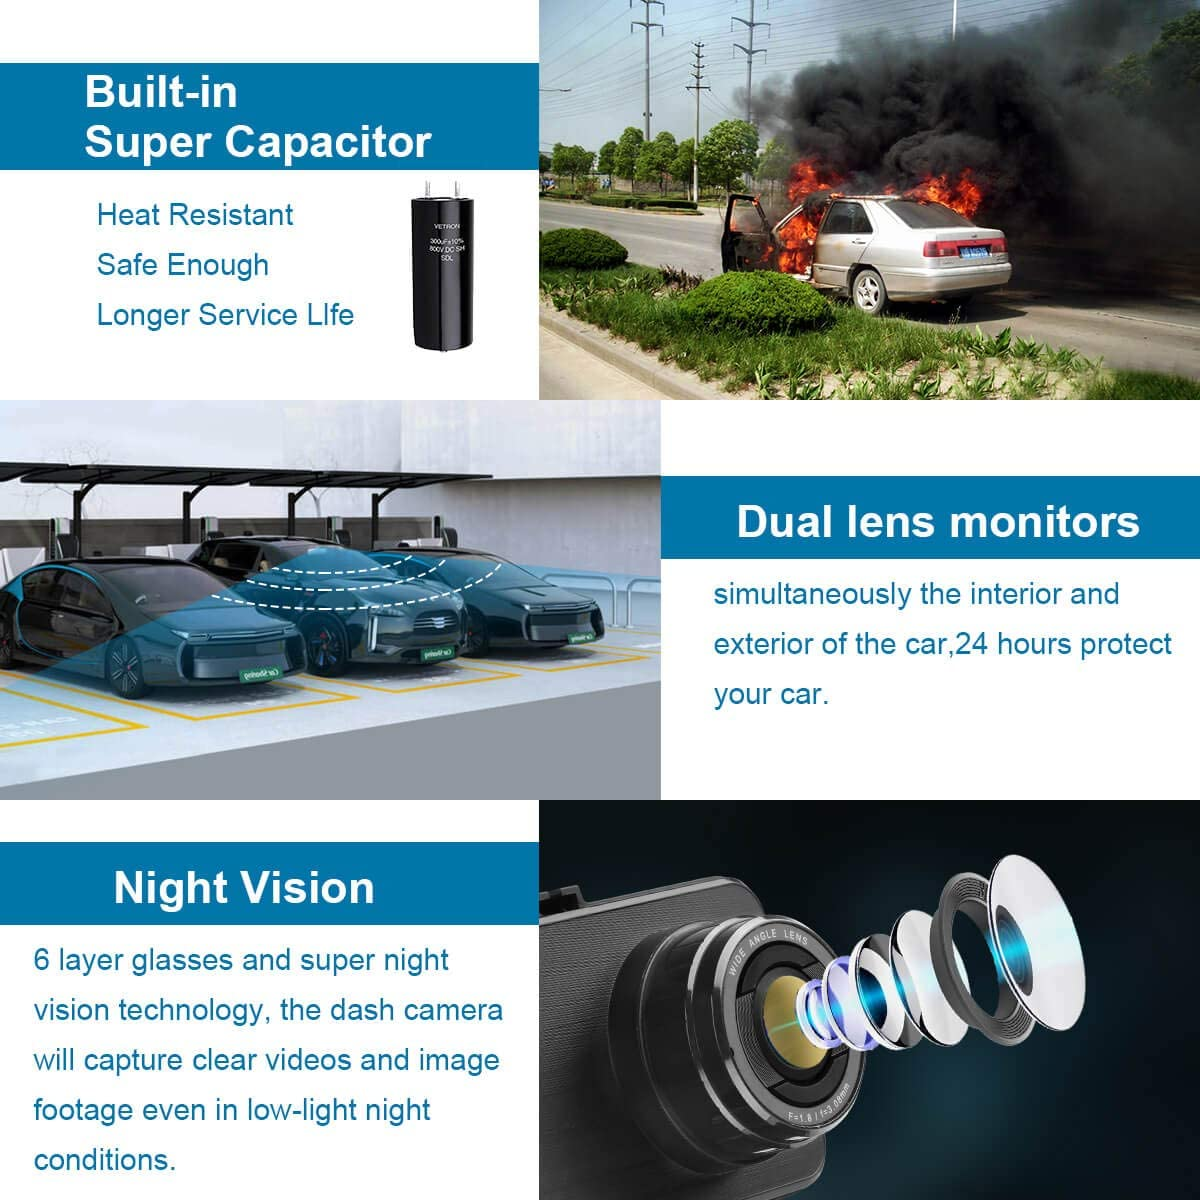 Dash Camera for Cars Front and Rear SSONTONG Dash Cam Dual Camera with SD Card FHD 1080P Driving Recorder 3 Inch IPS Screen 170 Wide Angle, HDR, Night Vision, Parking Mode, Motion Detection